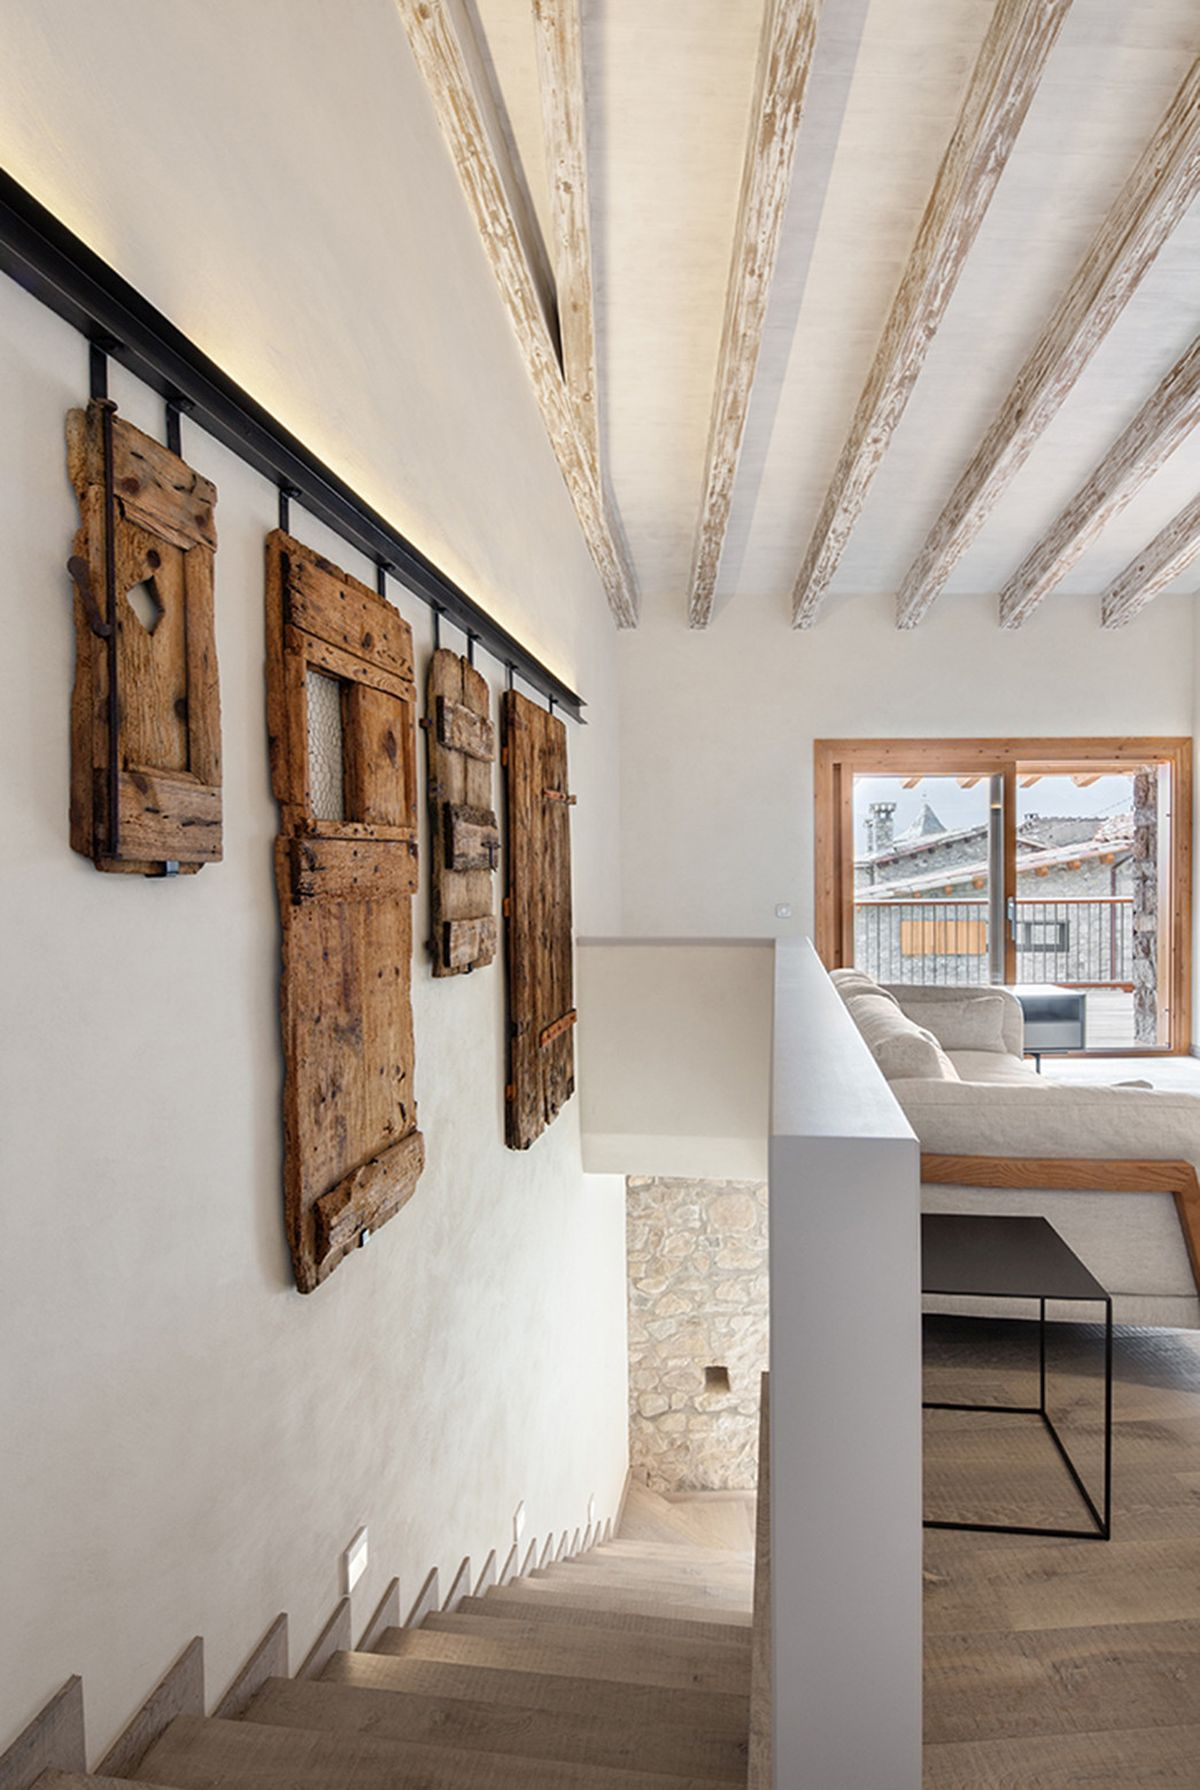 Rustic house gets rehabilitated in Spain - staircase wall deco